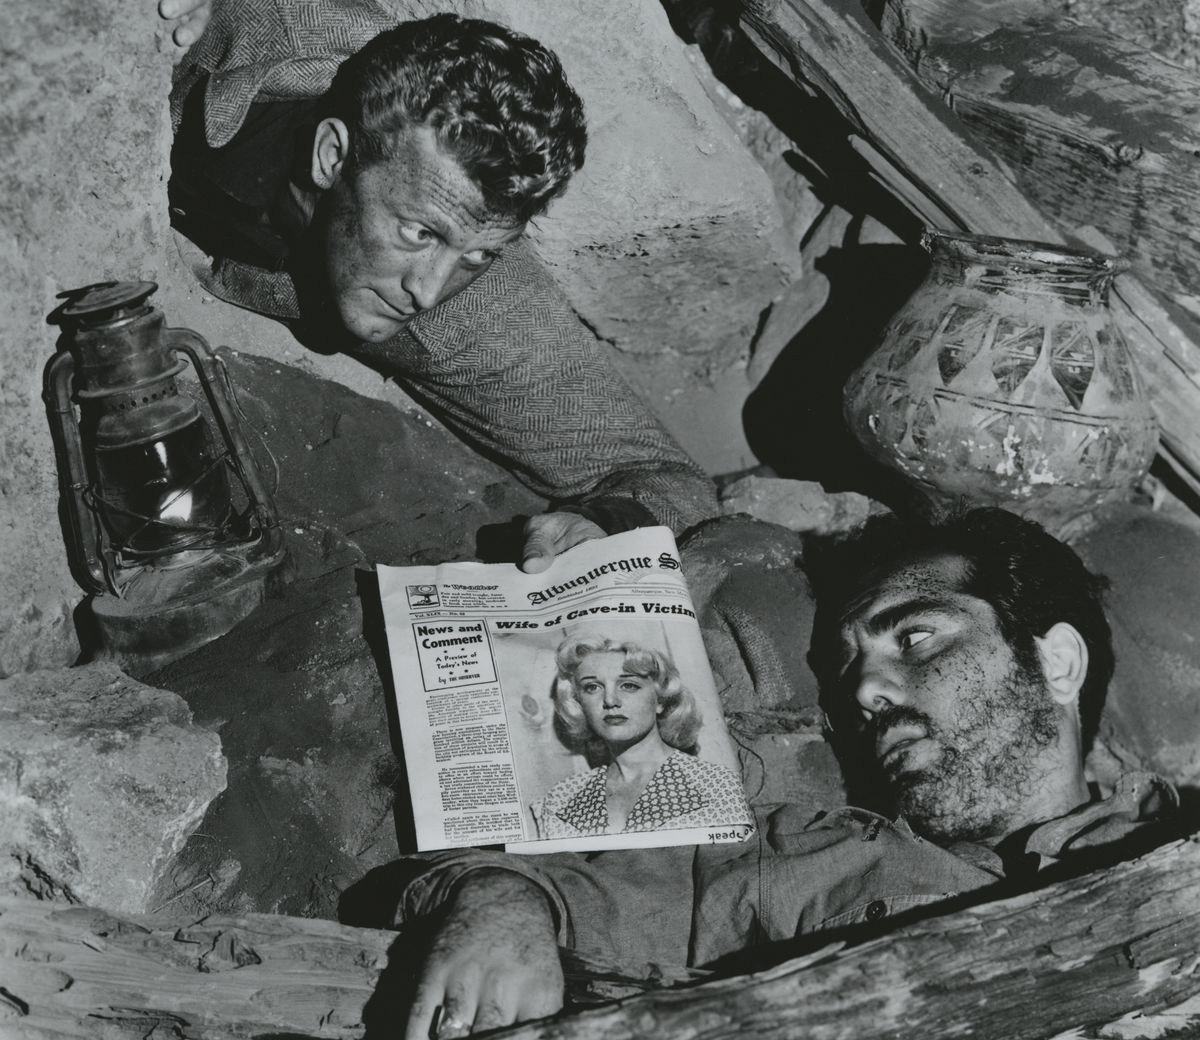 Robert Arthur and Kirk Douglas in Ace in the Hole